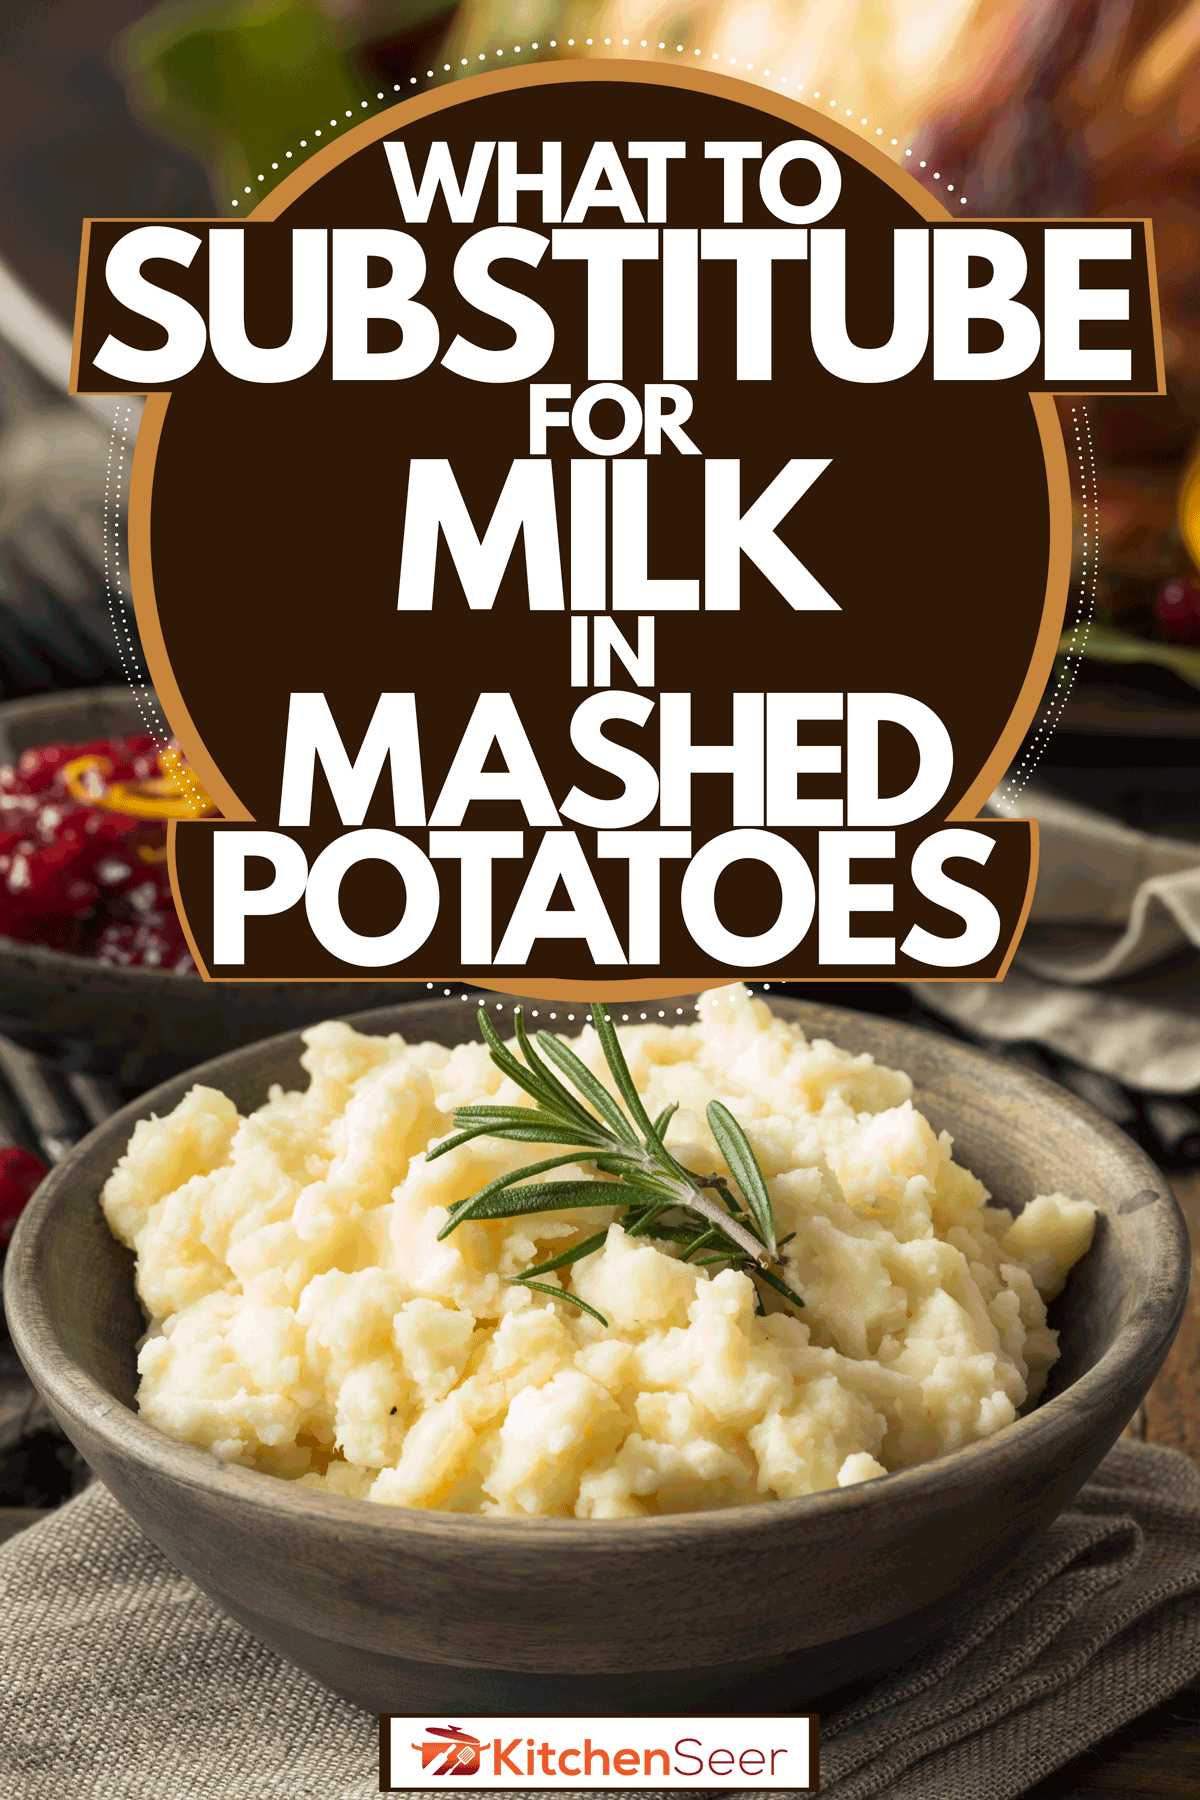 A delicious dish of mashed potatoes on a gray ceramic serving bowl, What To Substitute For Milk In Mashed Potatoes